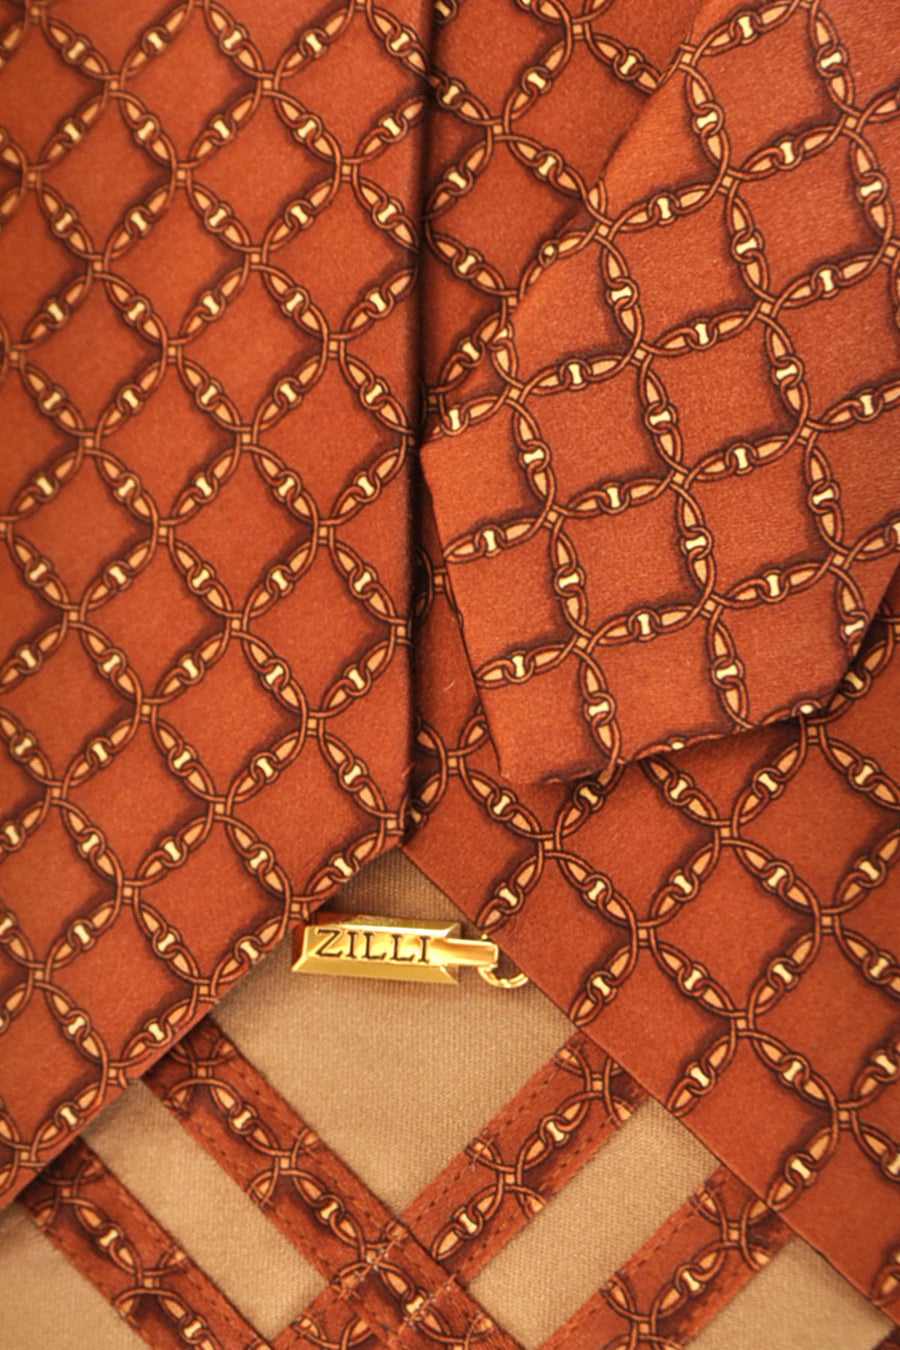 Zilli Tie Brown Gold Geometric - Wide Necktie FINAL SALE